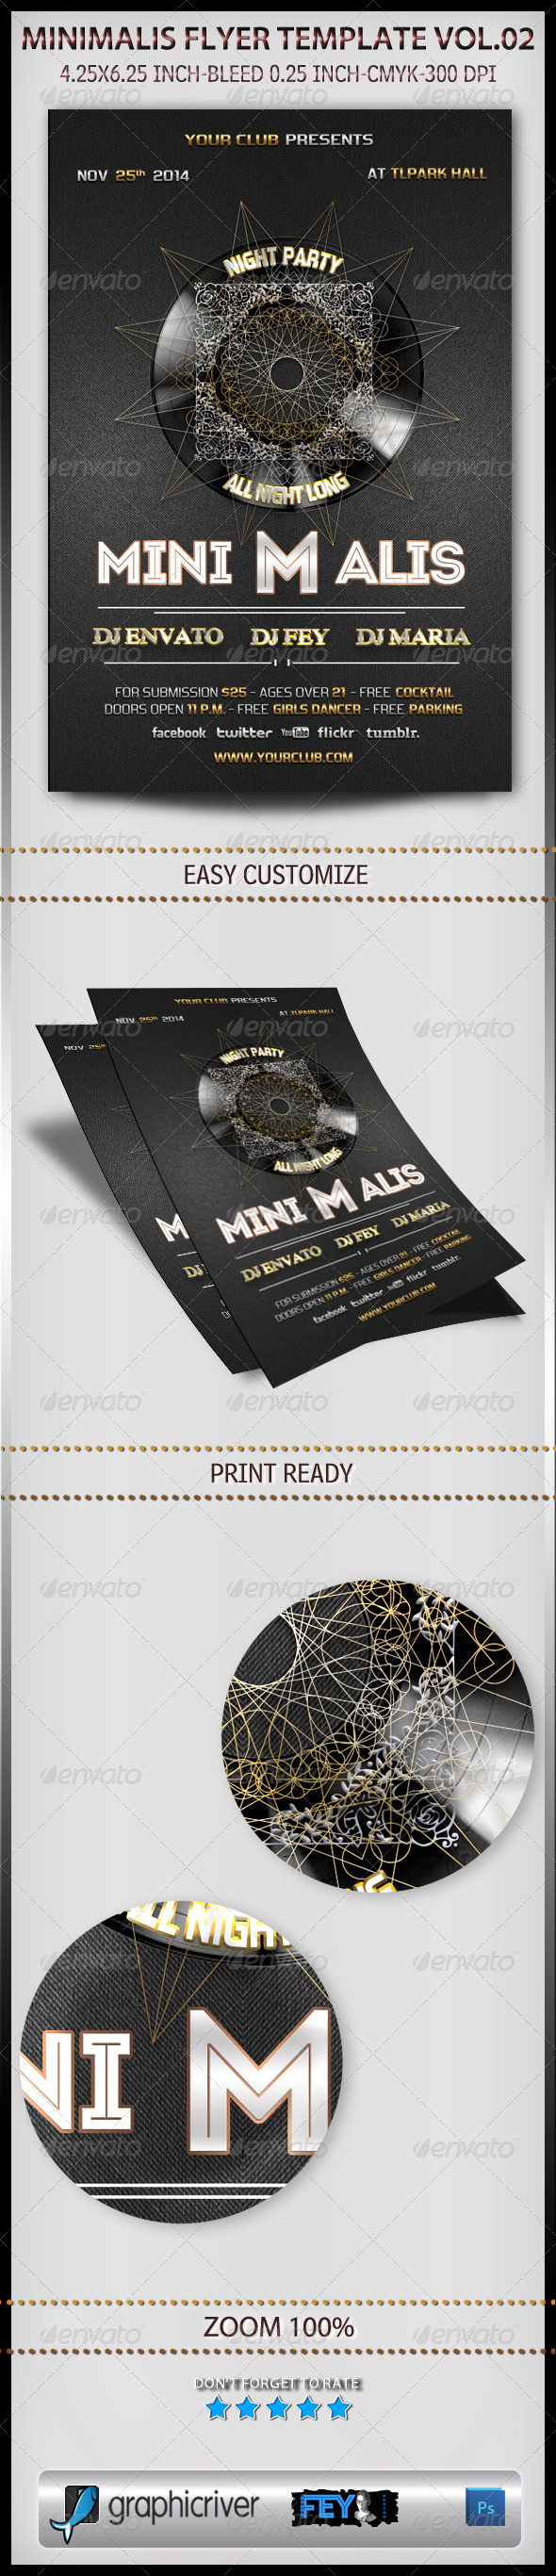 GraphicRiver Minimalis Flyer Template Vol.02 6033073